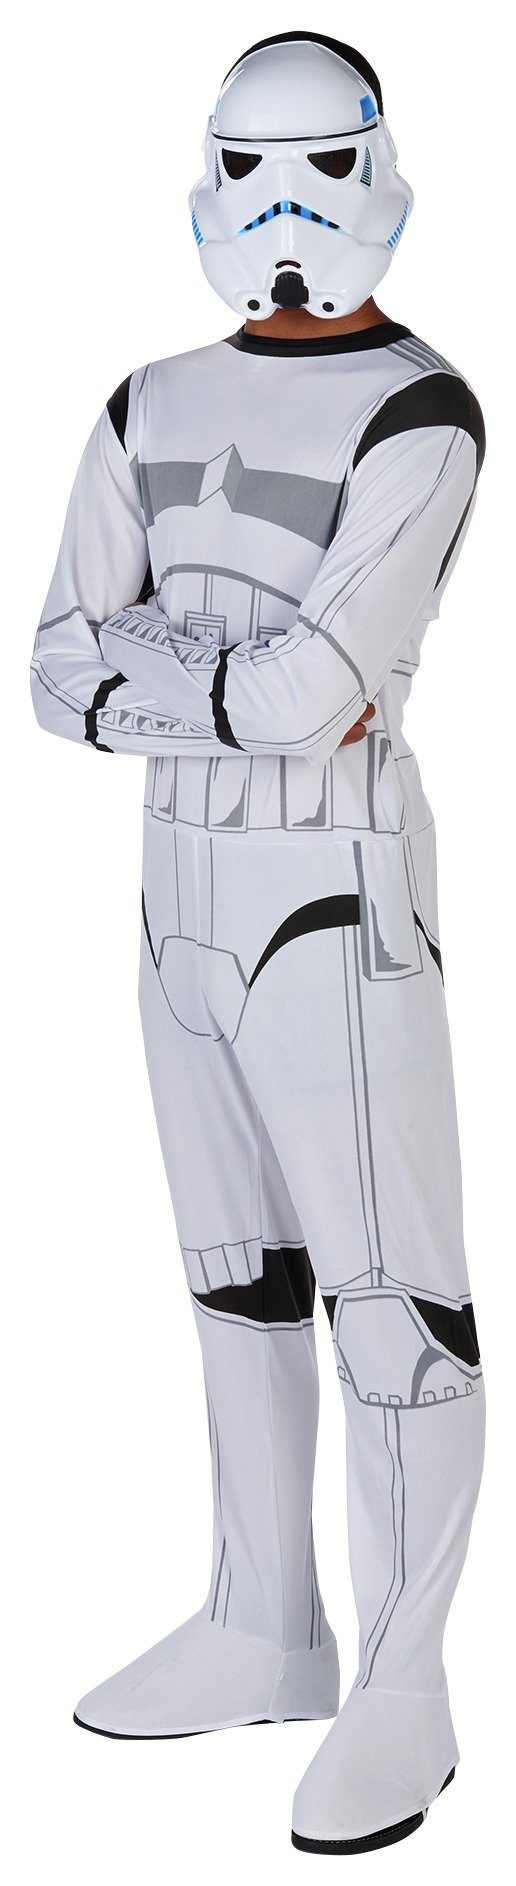 Star Wars Stormtrooper Fancy Dress Costume - Small/Medium